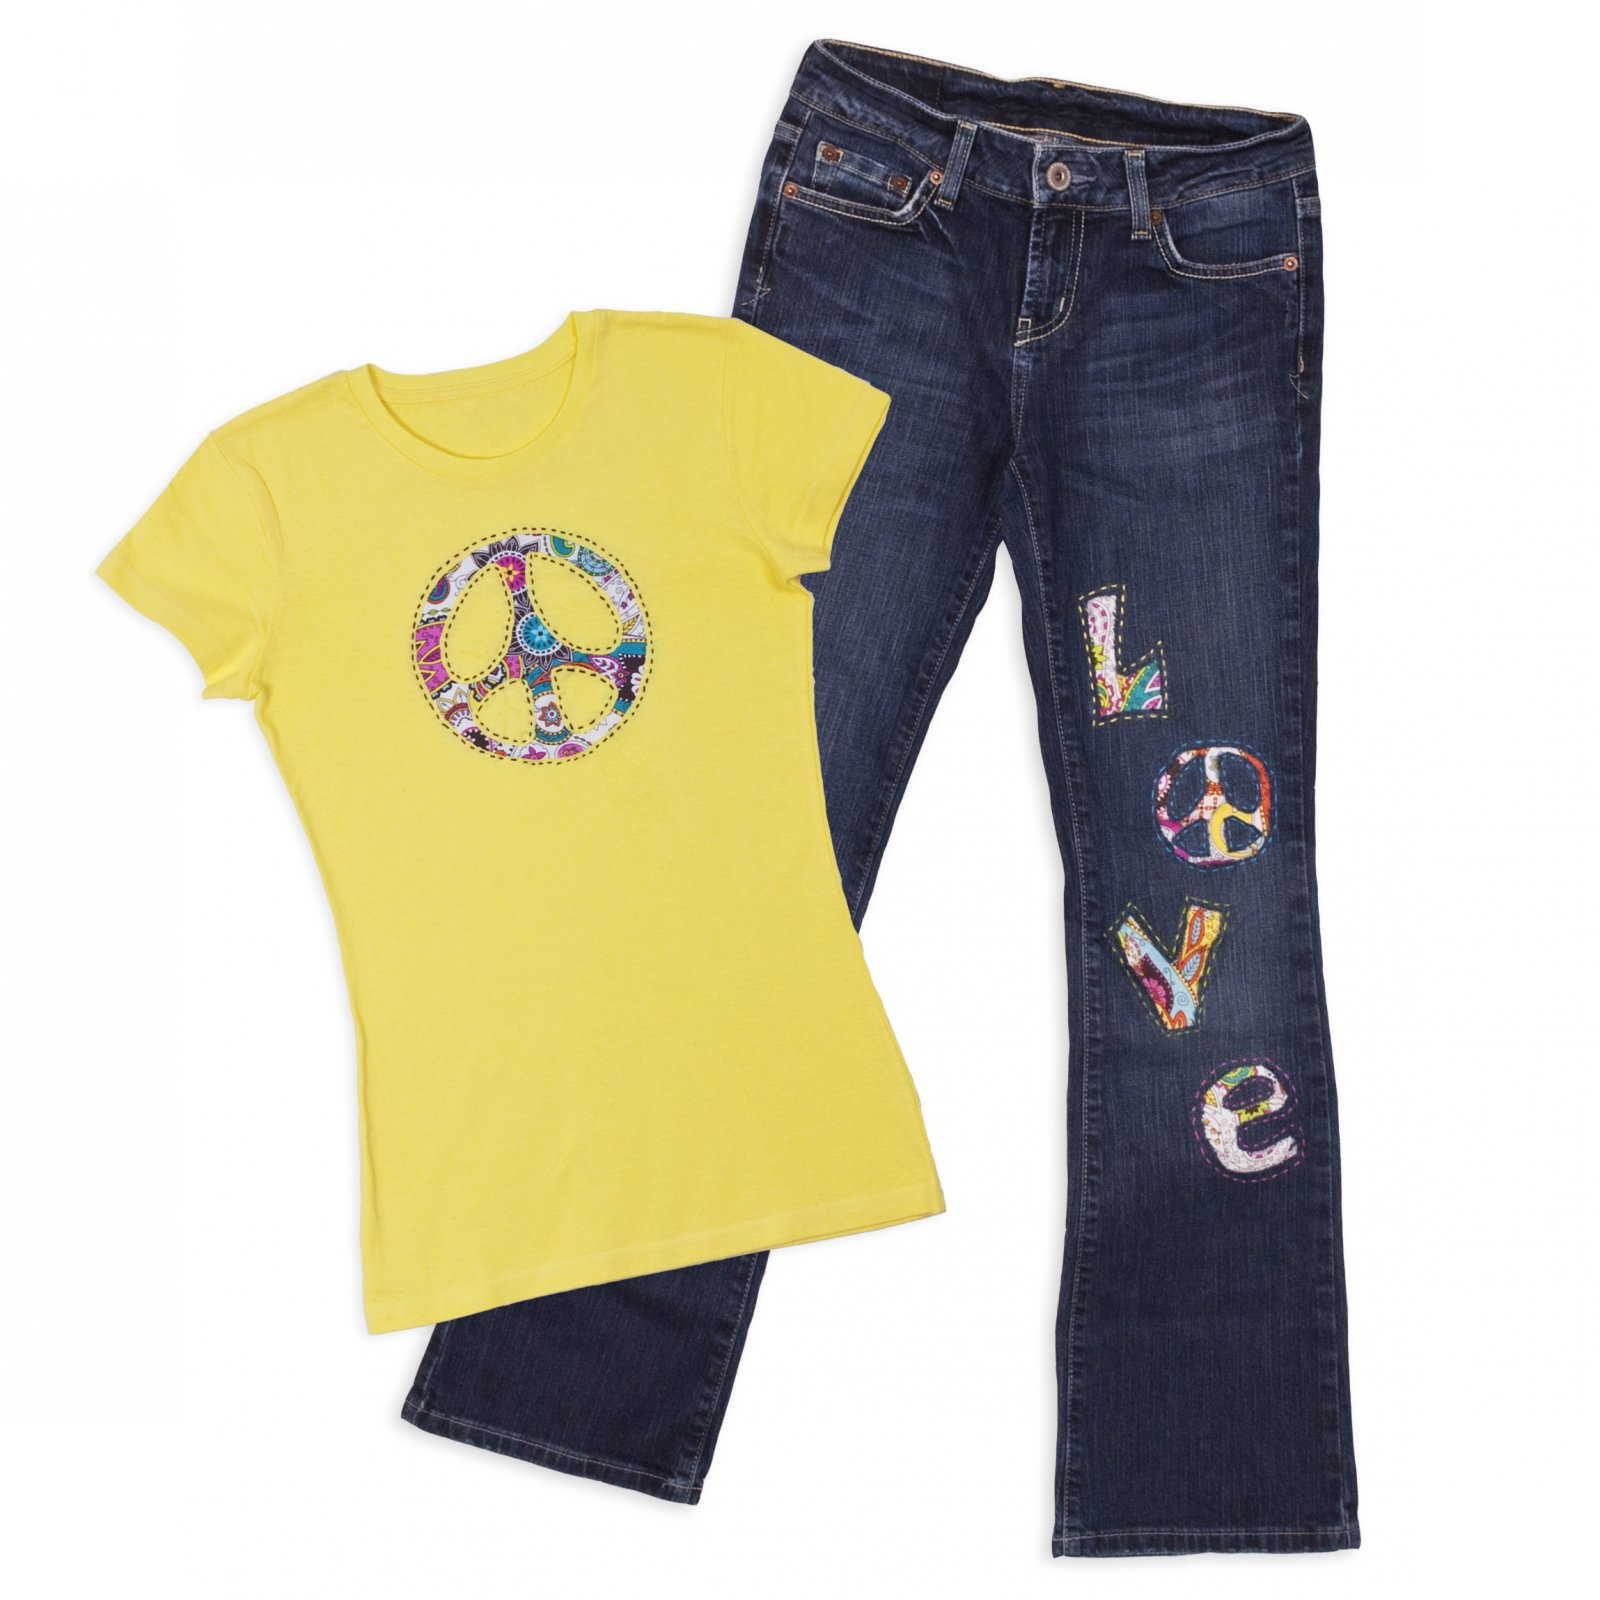 Reverse Applique Jeans & Shirt